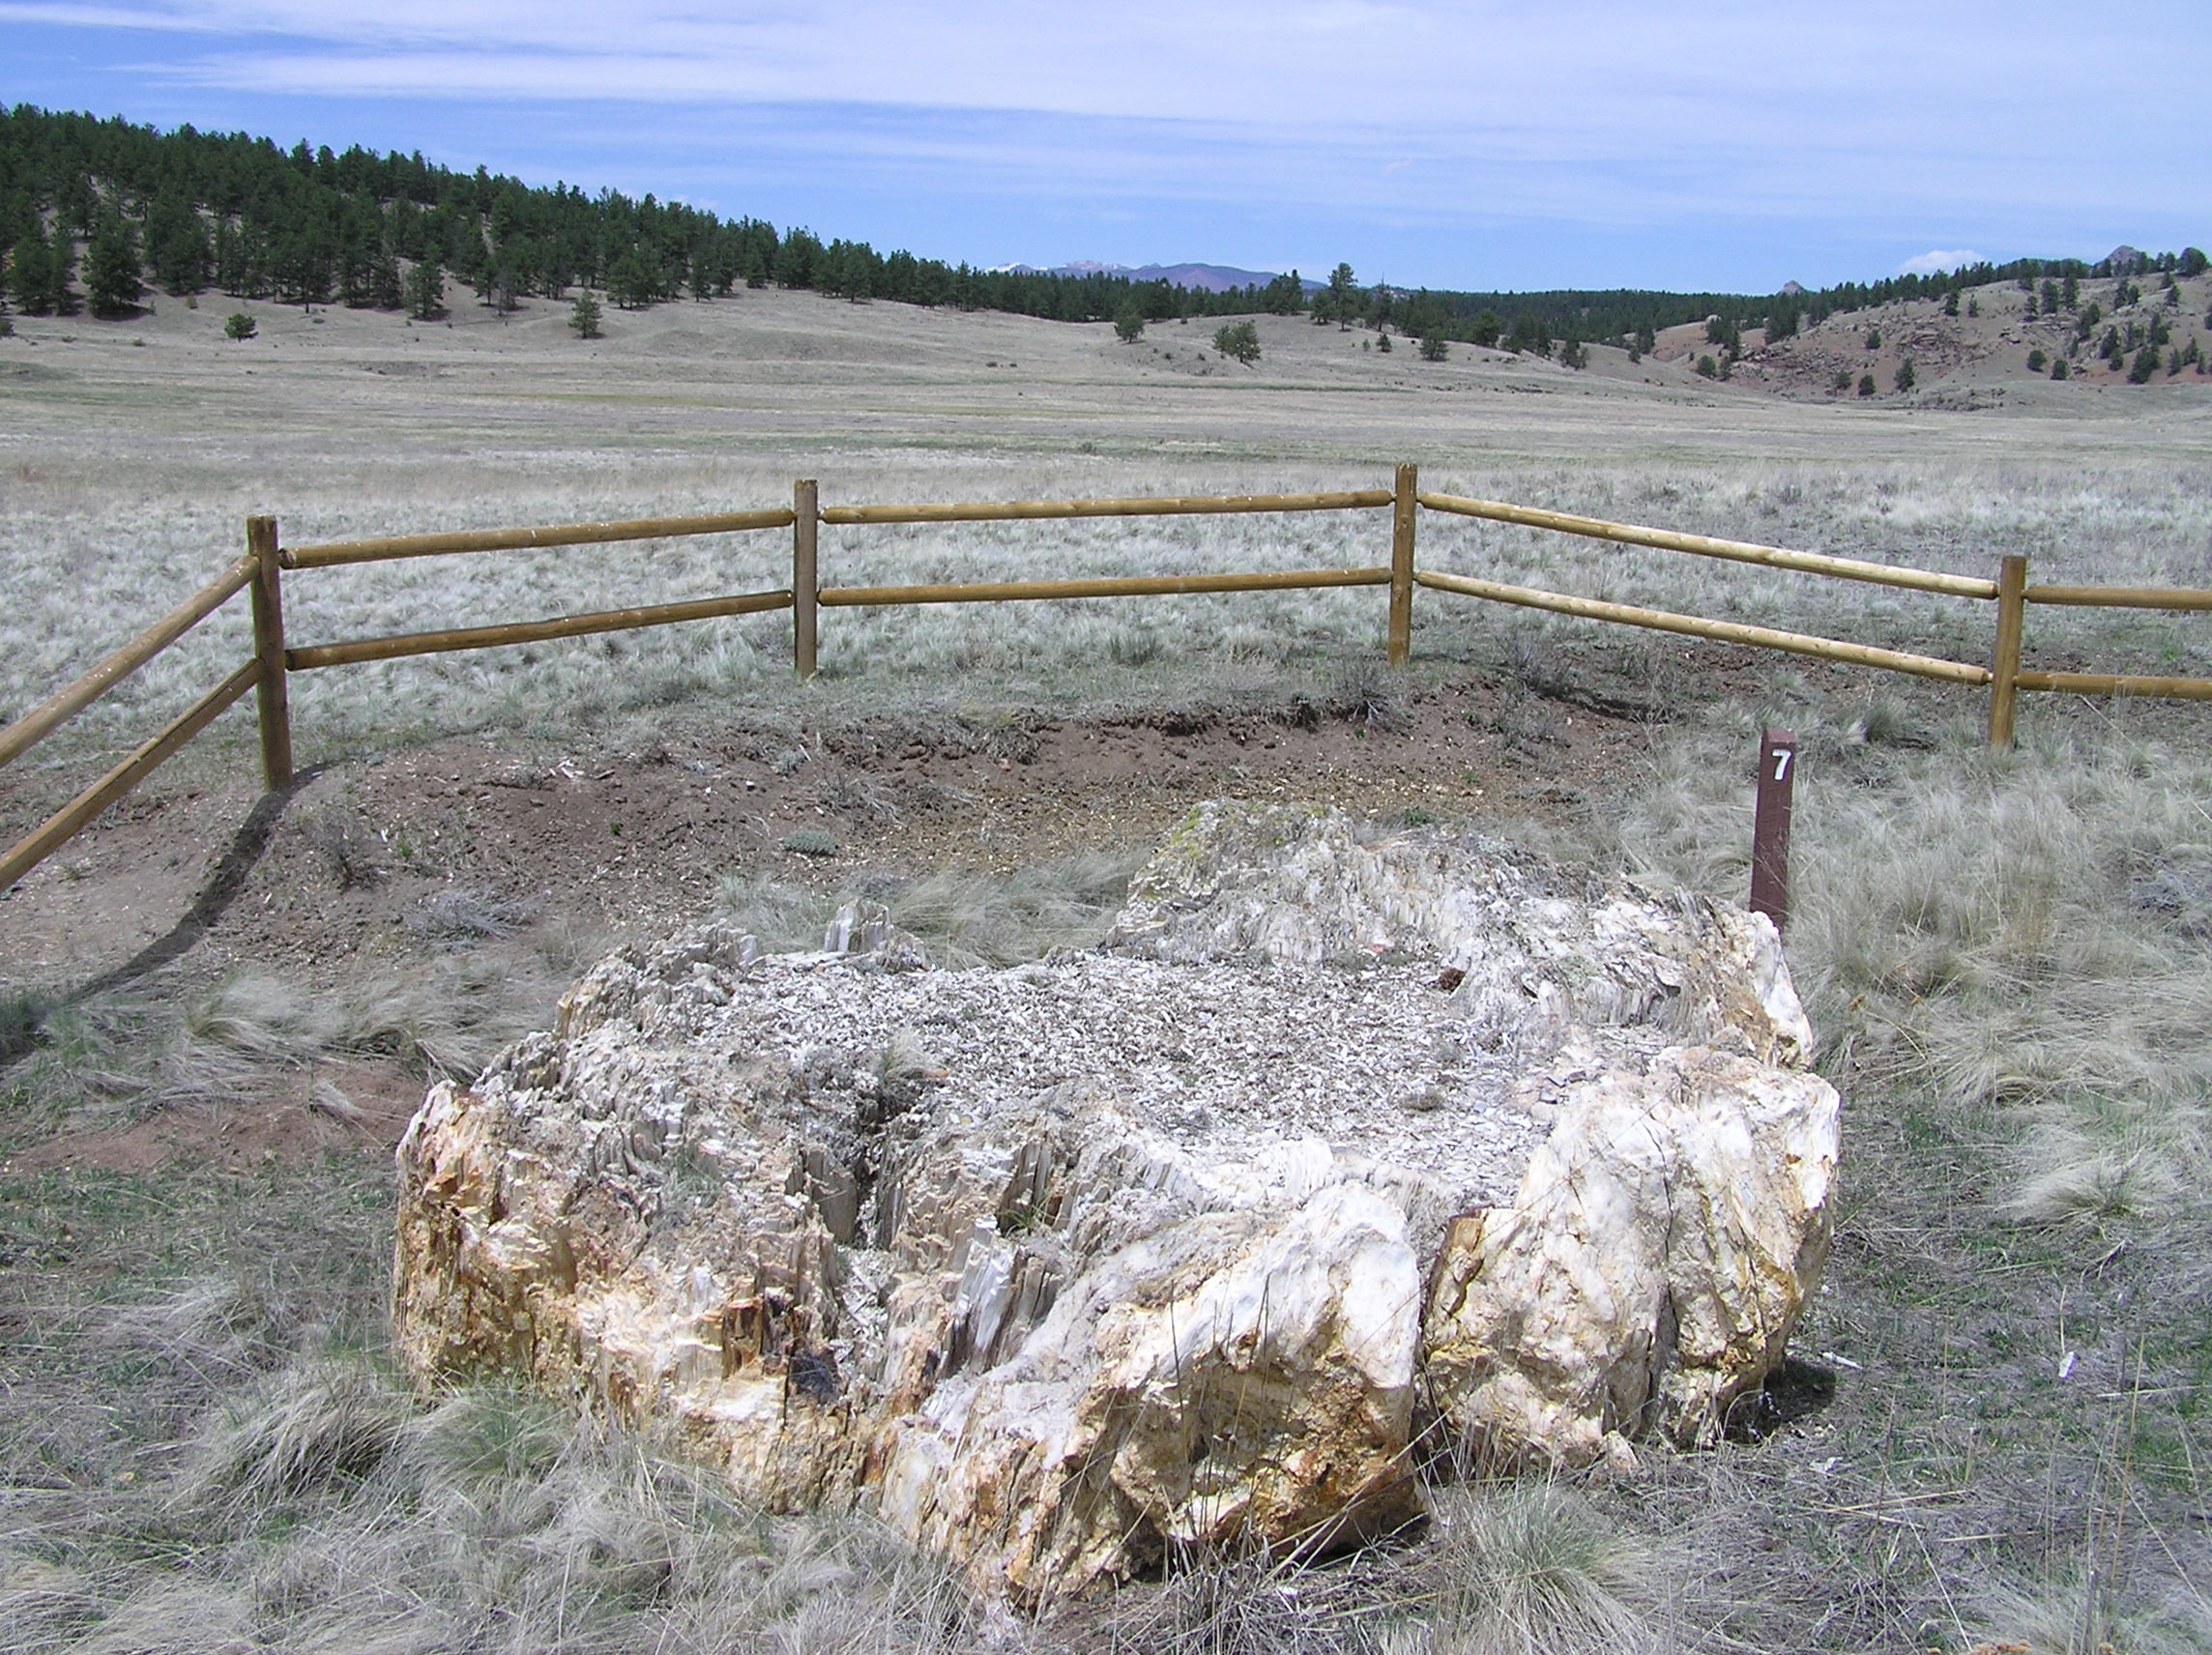 Florissant Fossil Beds National Monument PA272521.jpg English: Location Florissant Fossil Beds National Monument Beneath a grassy